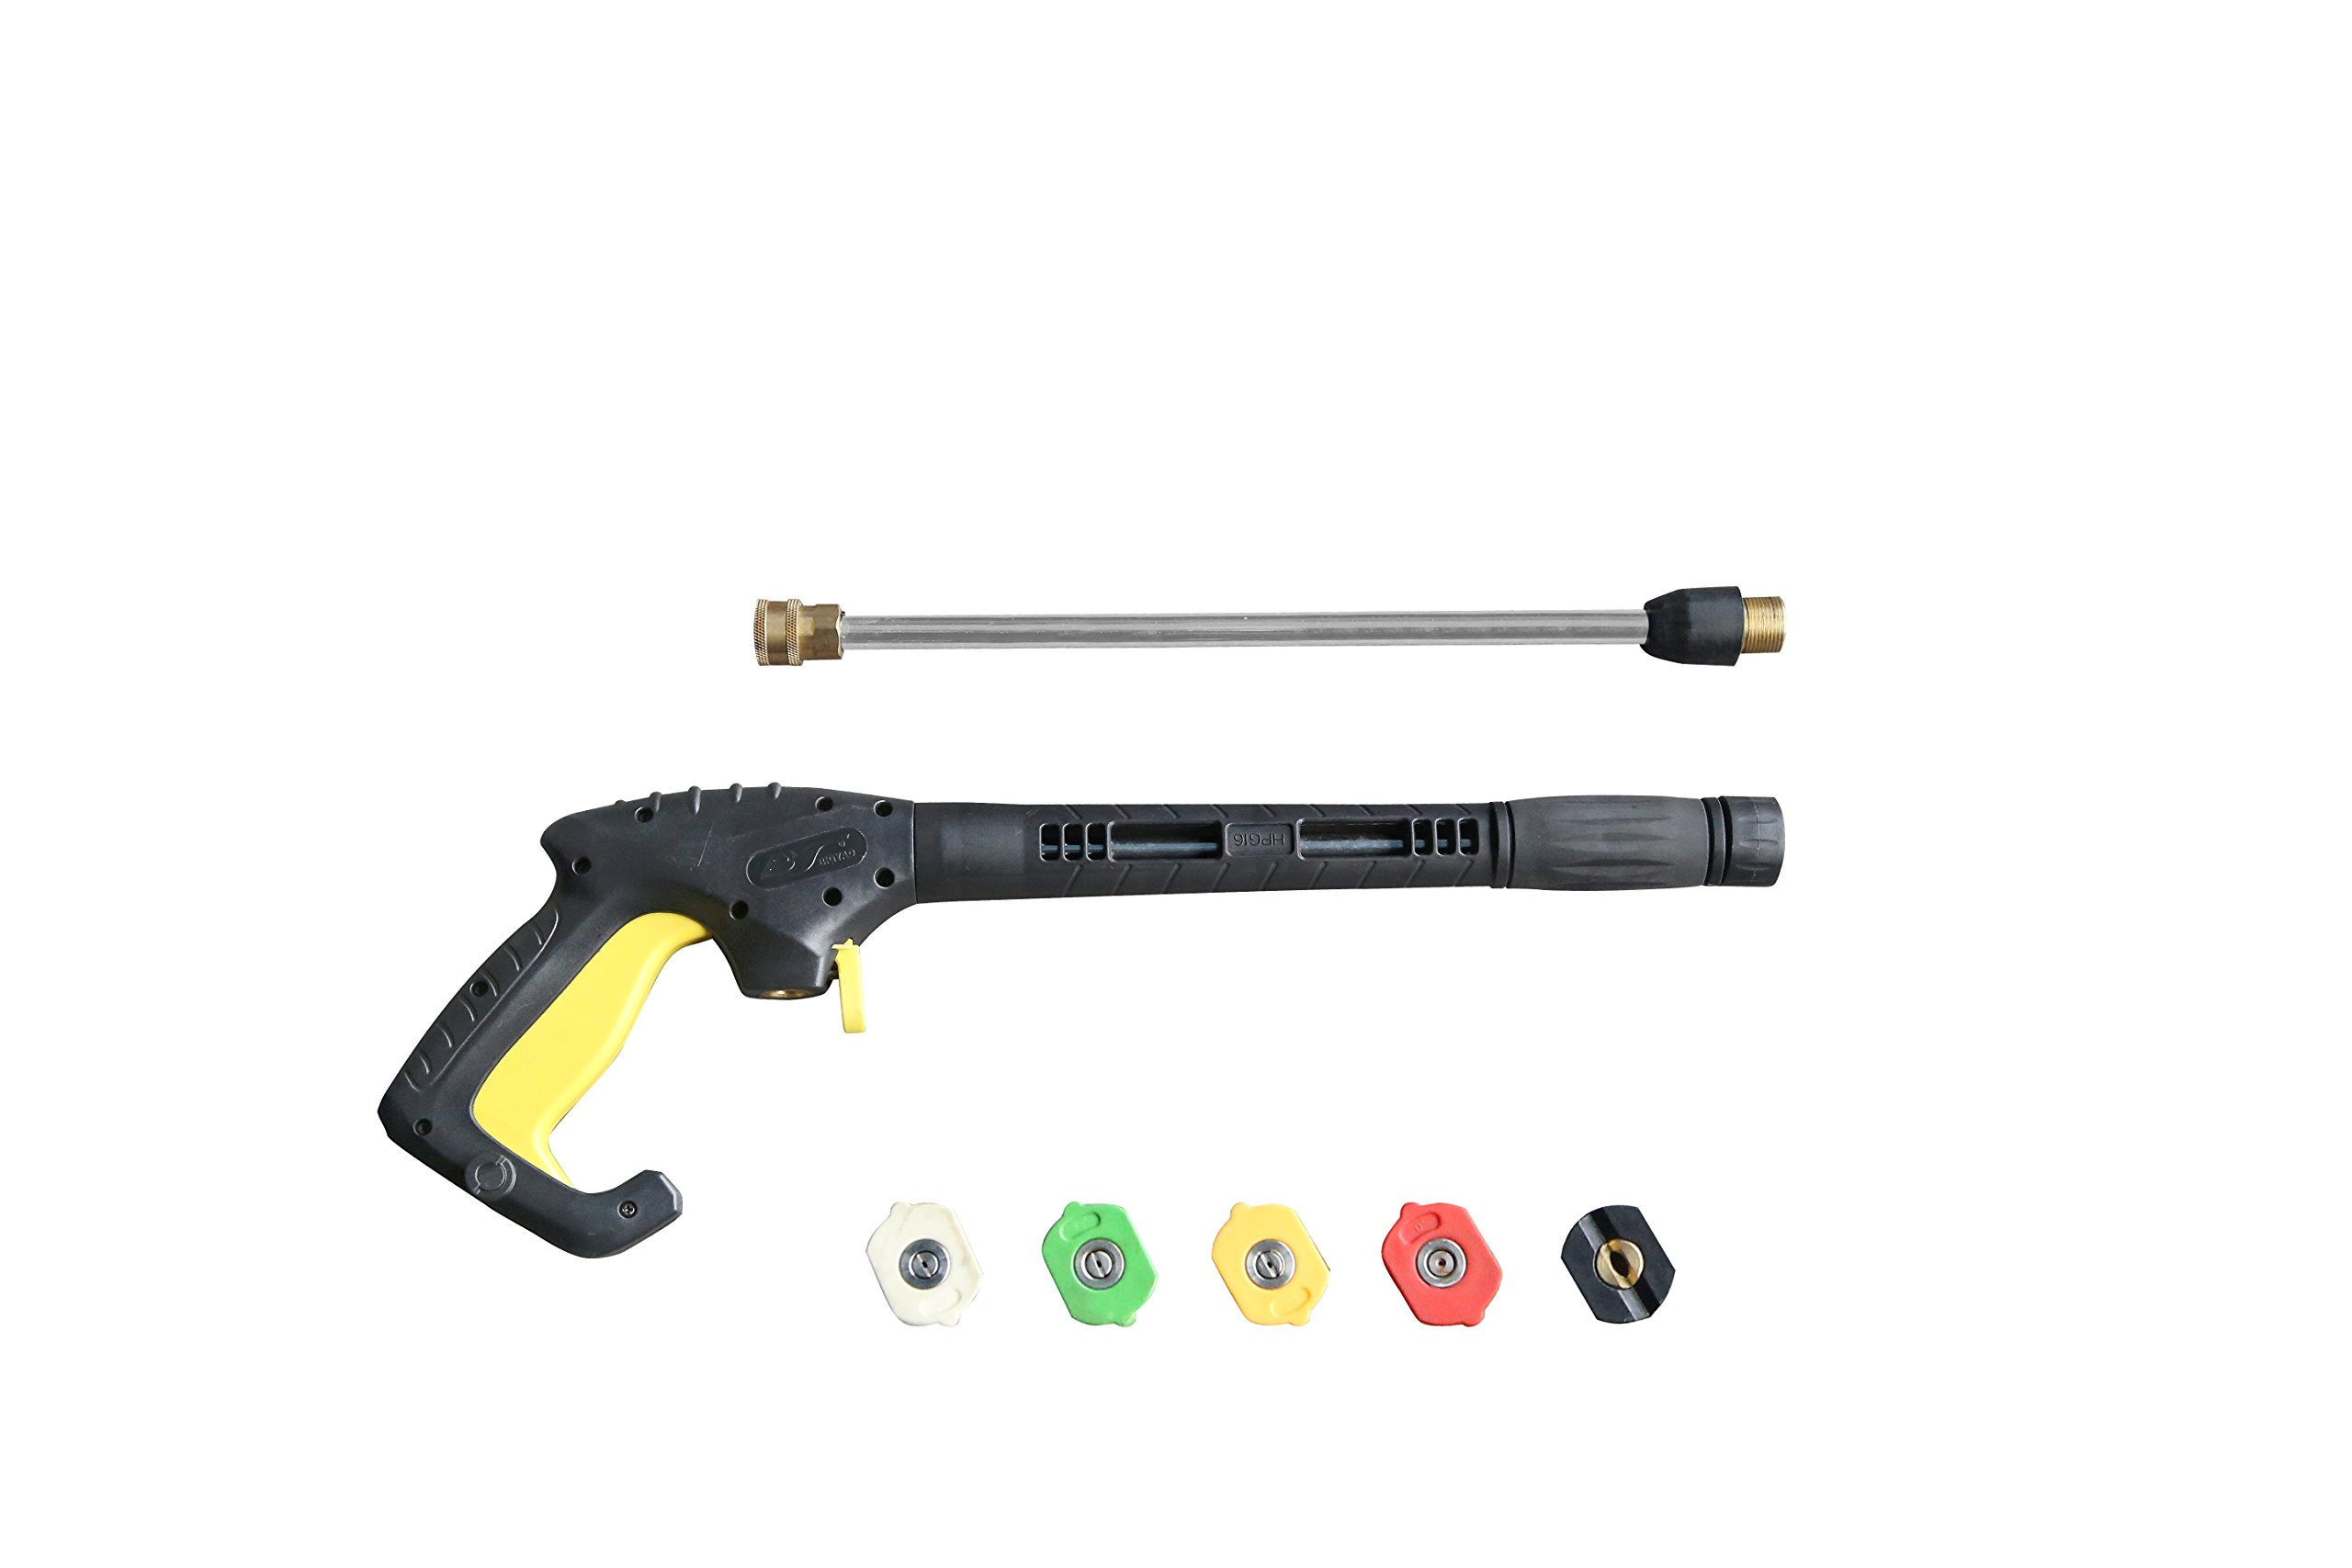 Realm Pressure Washer HPG16 Gun,3000 PSI with 5 Colors Pressure Washer Nozzles by Realm